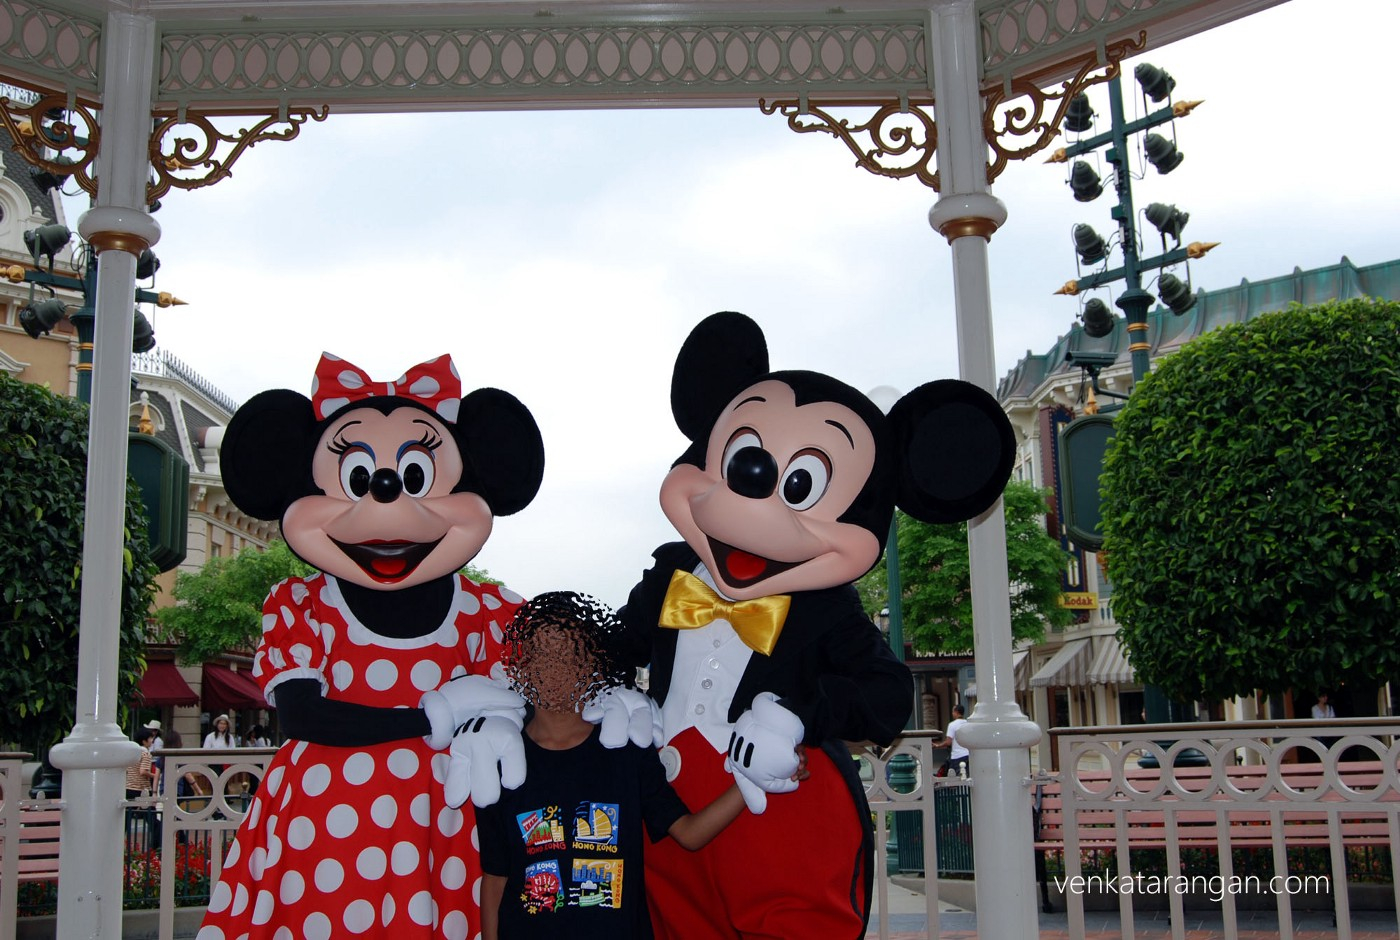 Son loved taking a picture with Mickey and Minnie